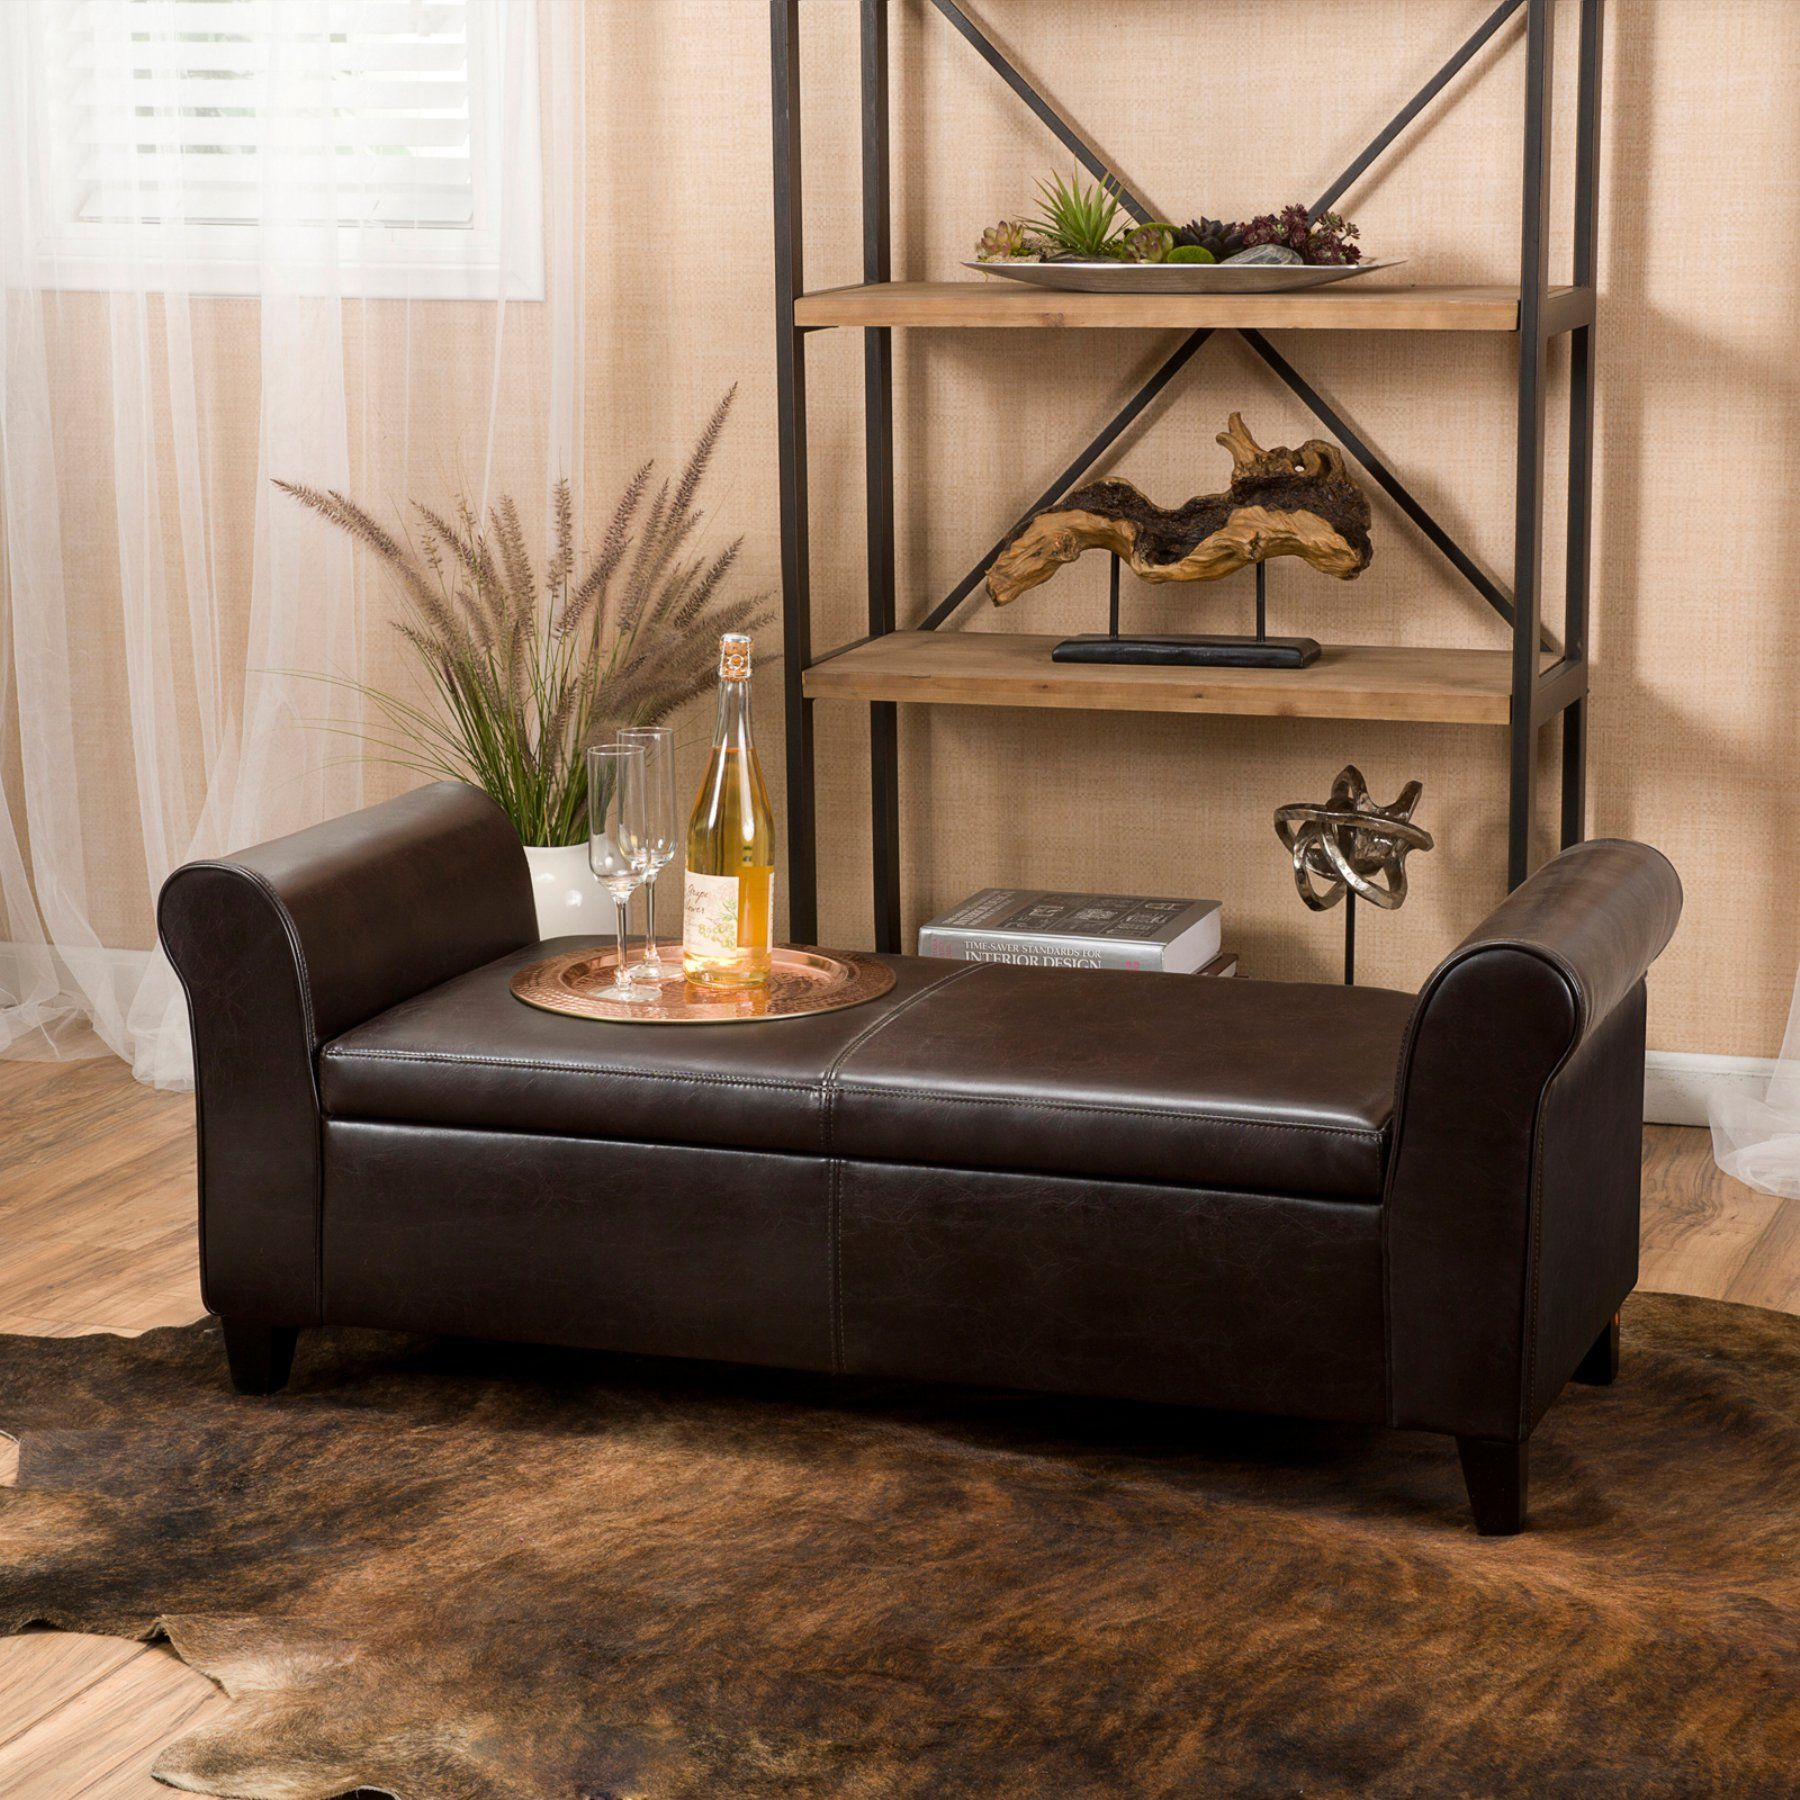 Best Selling Home Martin Faux Leather Bedroom Bench with Storage ...